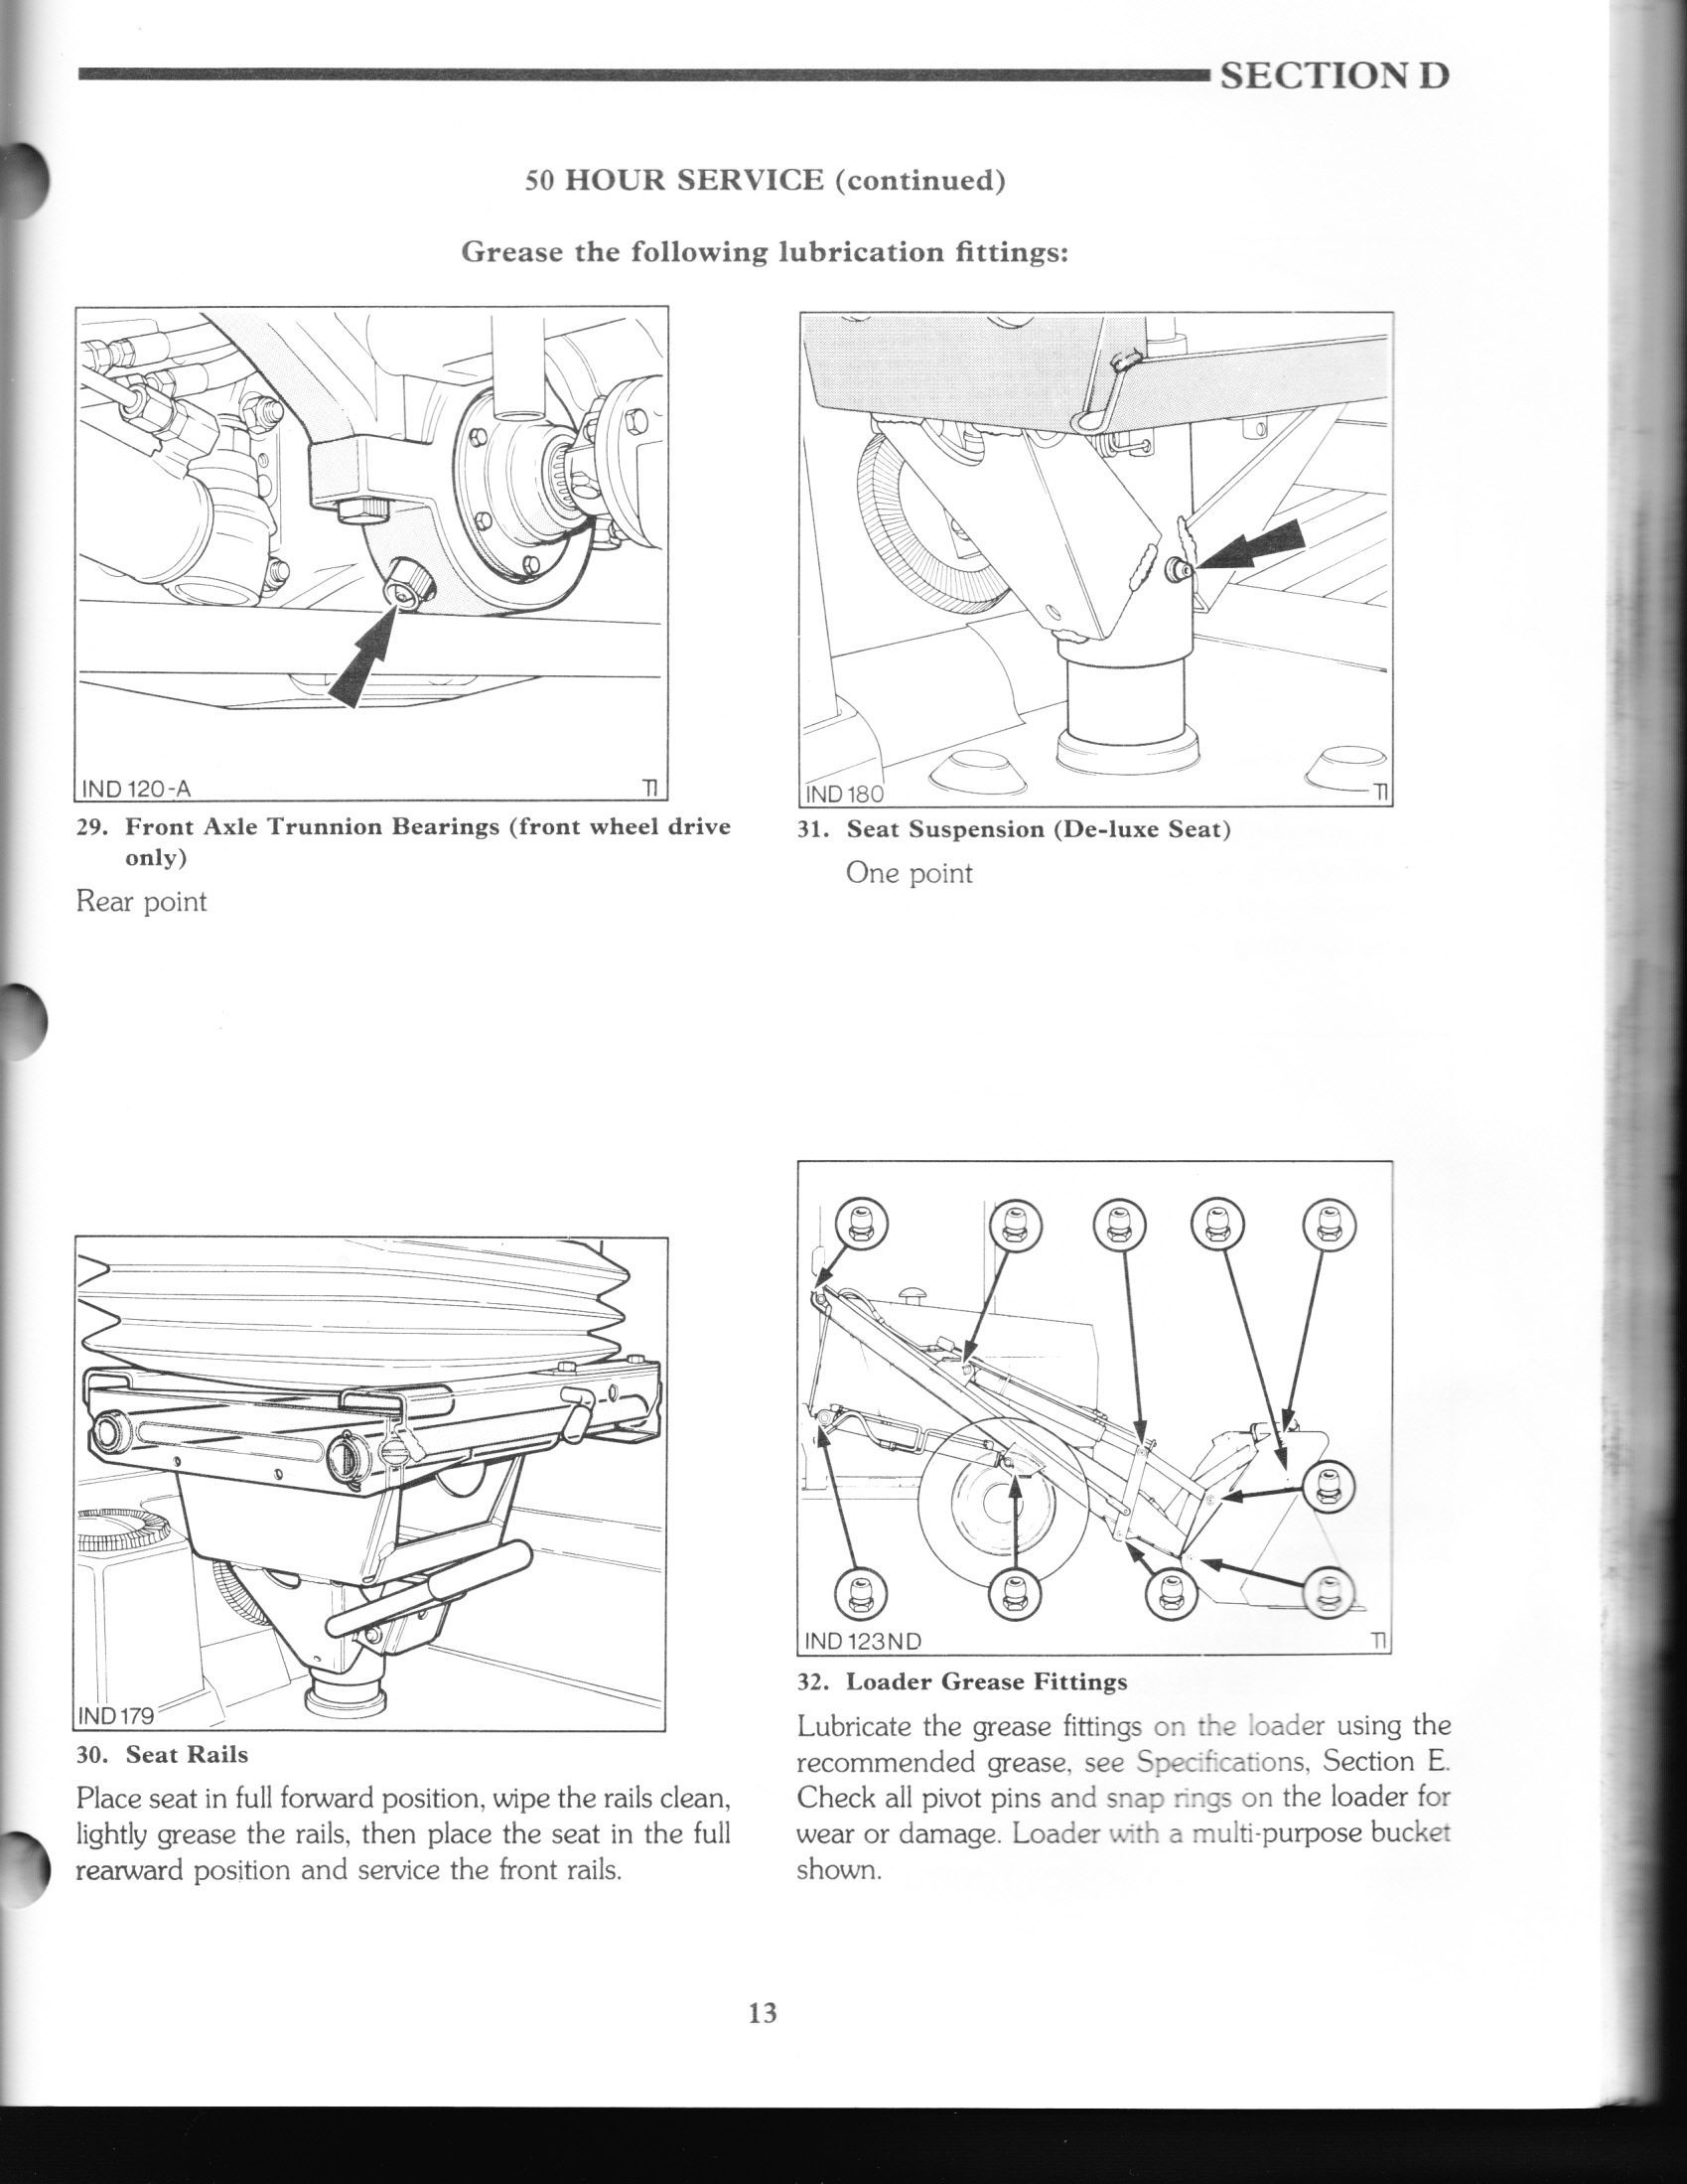 Happy New Year I'm Using A Ford 555d 4x4 Backhoe And Getting. Here Is The Info You Requested Sorry For Delay Flu Kicking My Butt. Ford. Ford 555 Backhoe Front Axle Diagram At Scoala.co